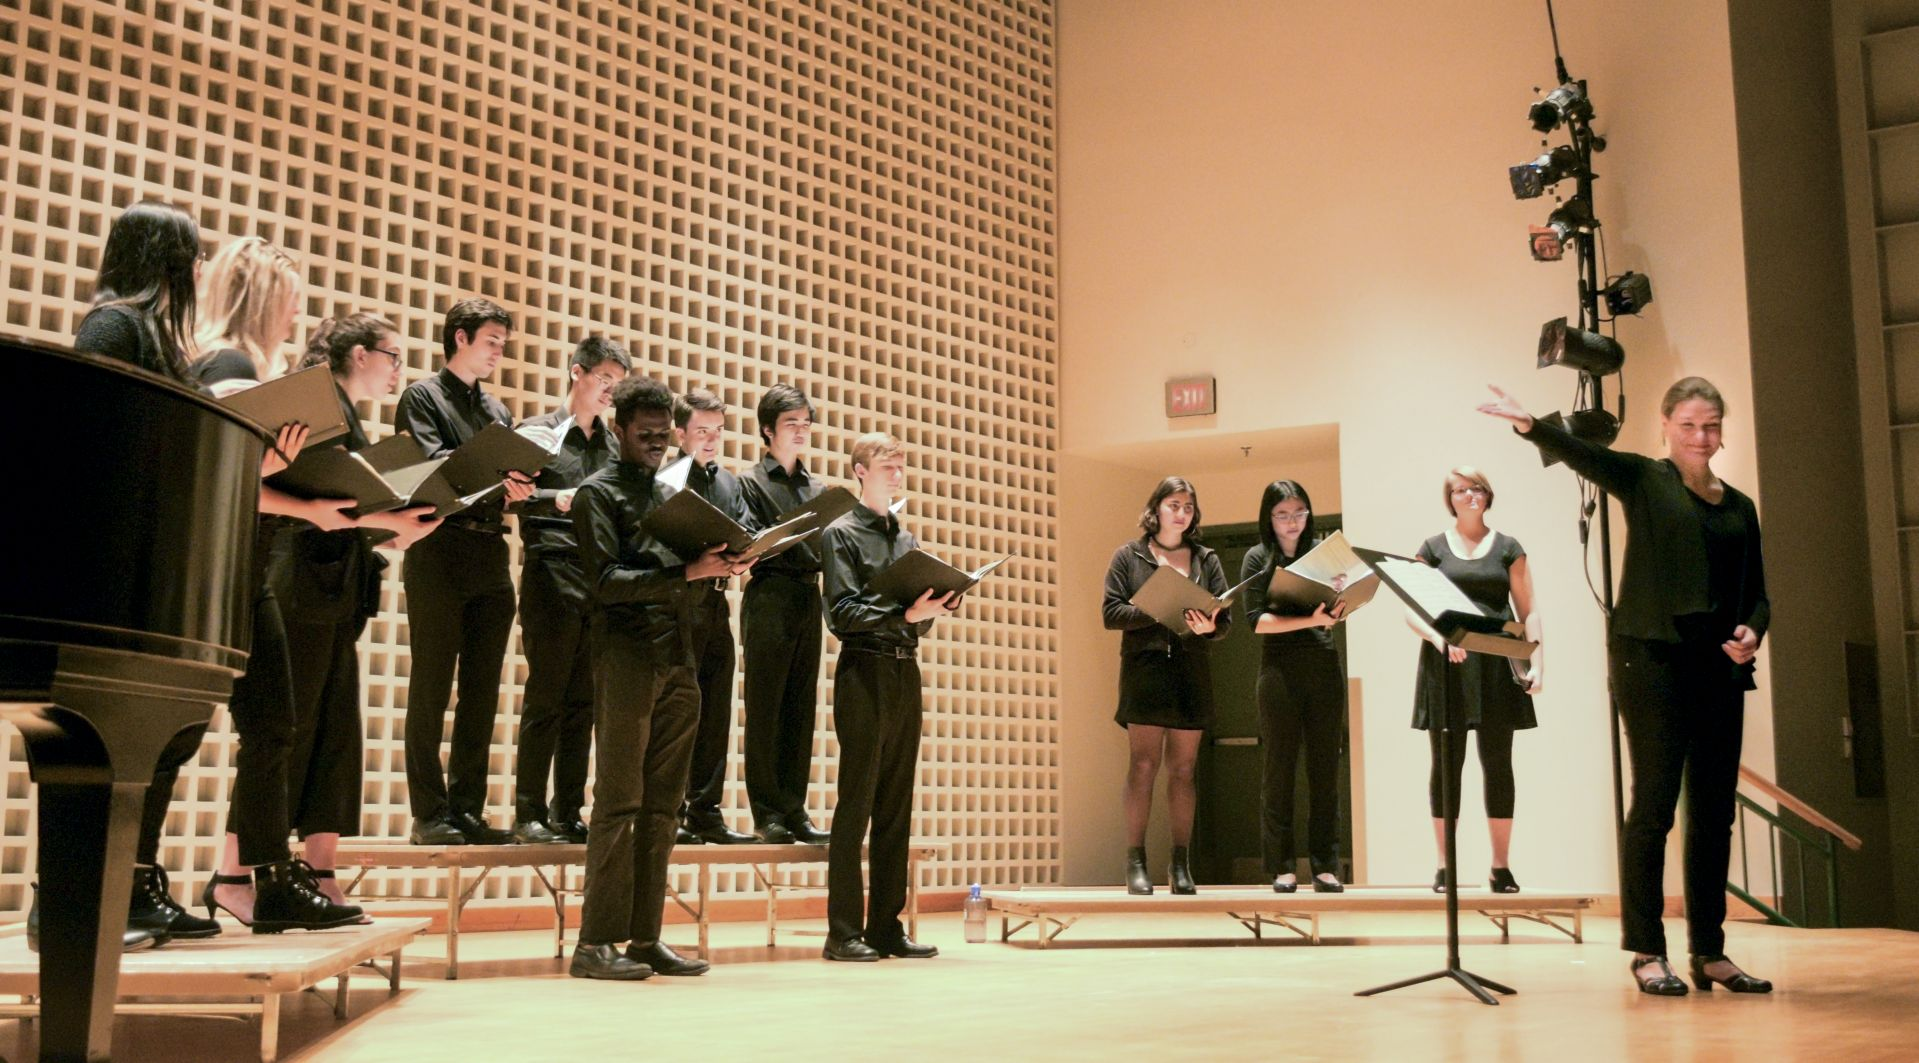 Joelle Morris, at right, and the college choir during their Nov. 17 autumn performance. (Layla Dozier '21 for Bates College)